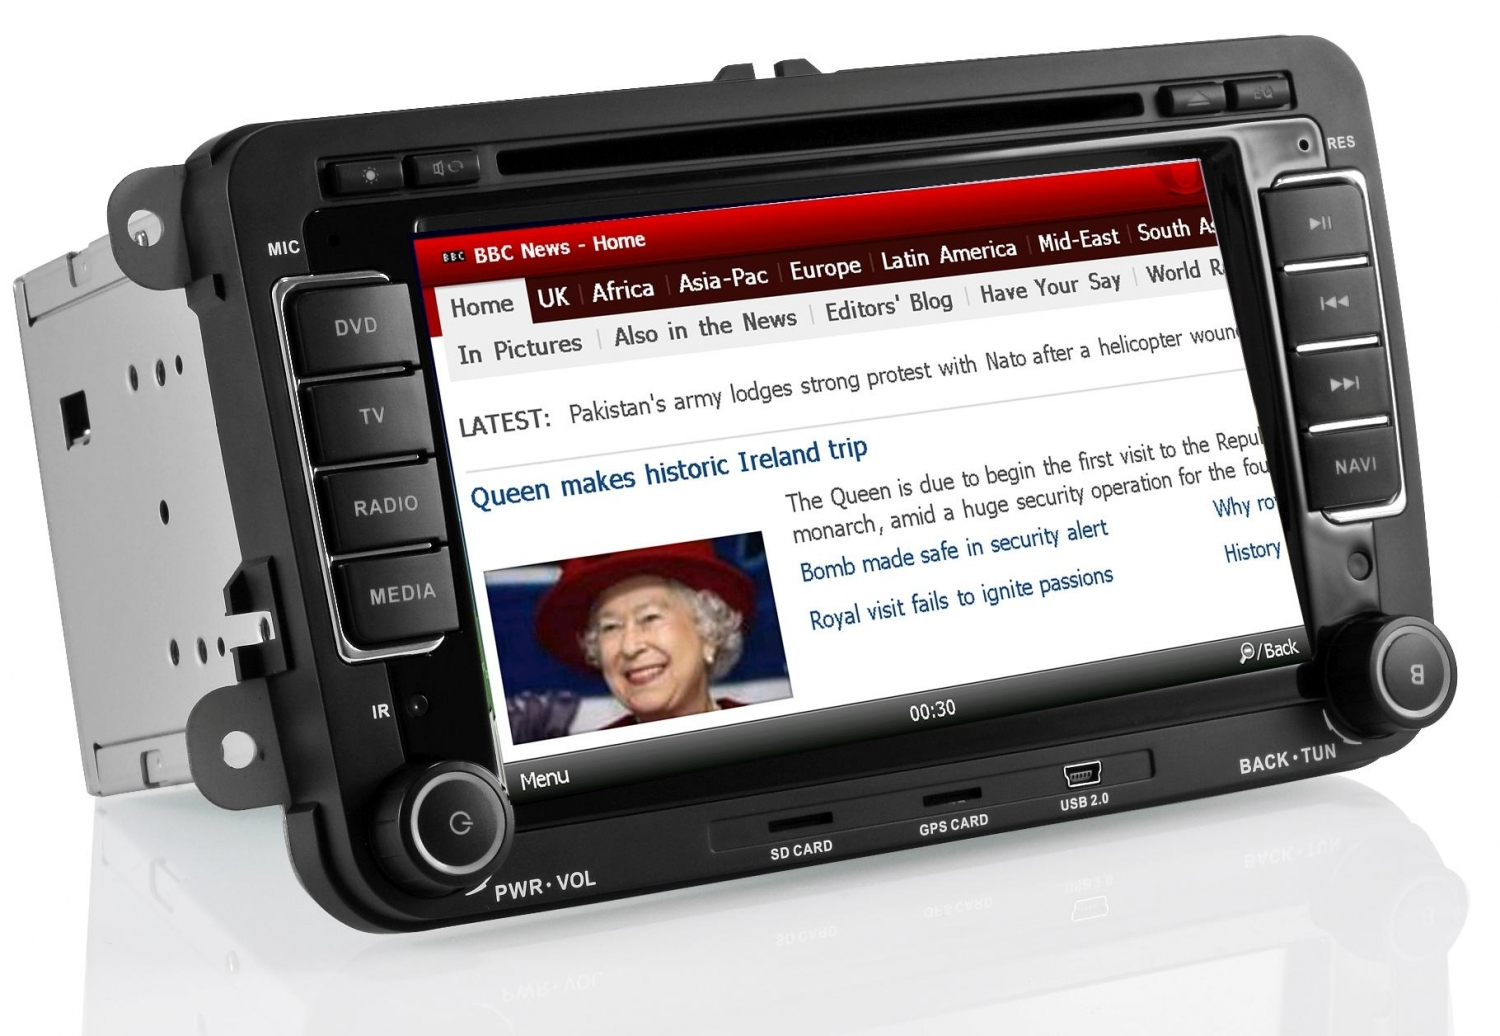 autoradio dvd gps tnt pc volkswagen seat skoda 3615 trouver l 39 autoradio gps de vos r ves le. Black Bedroom Furniture Sets. Home Design Ideas